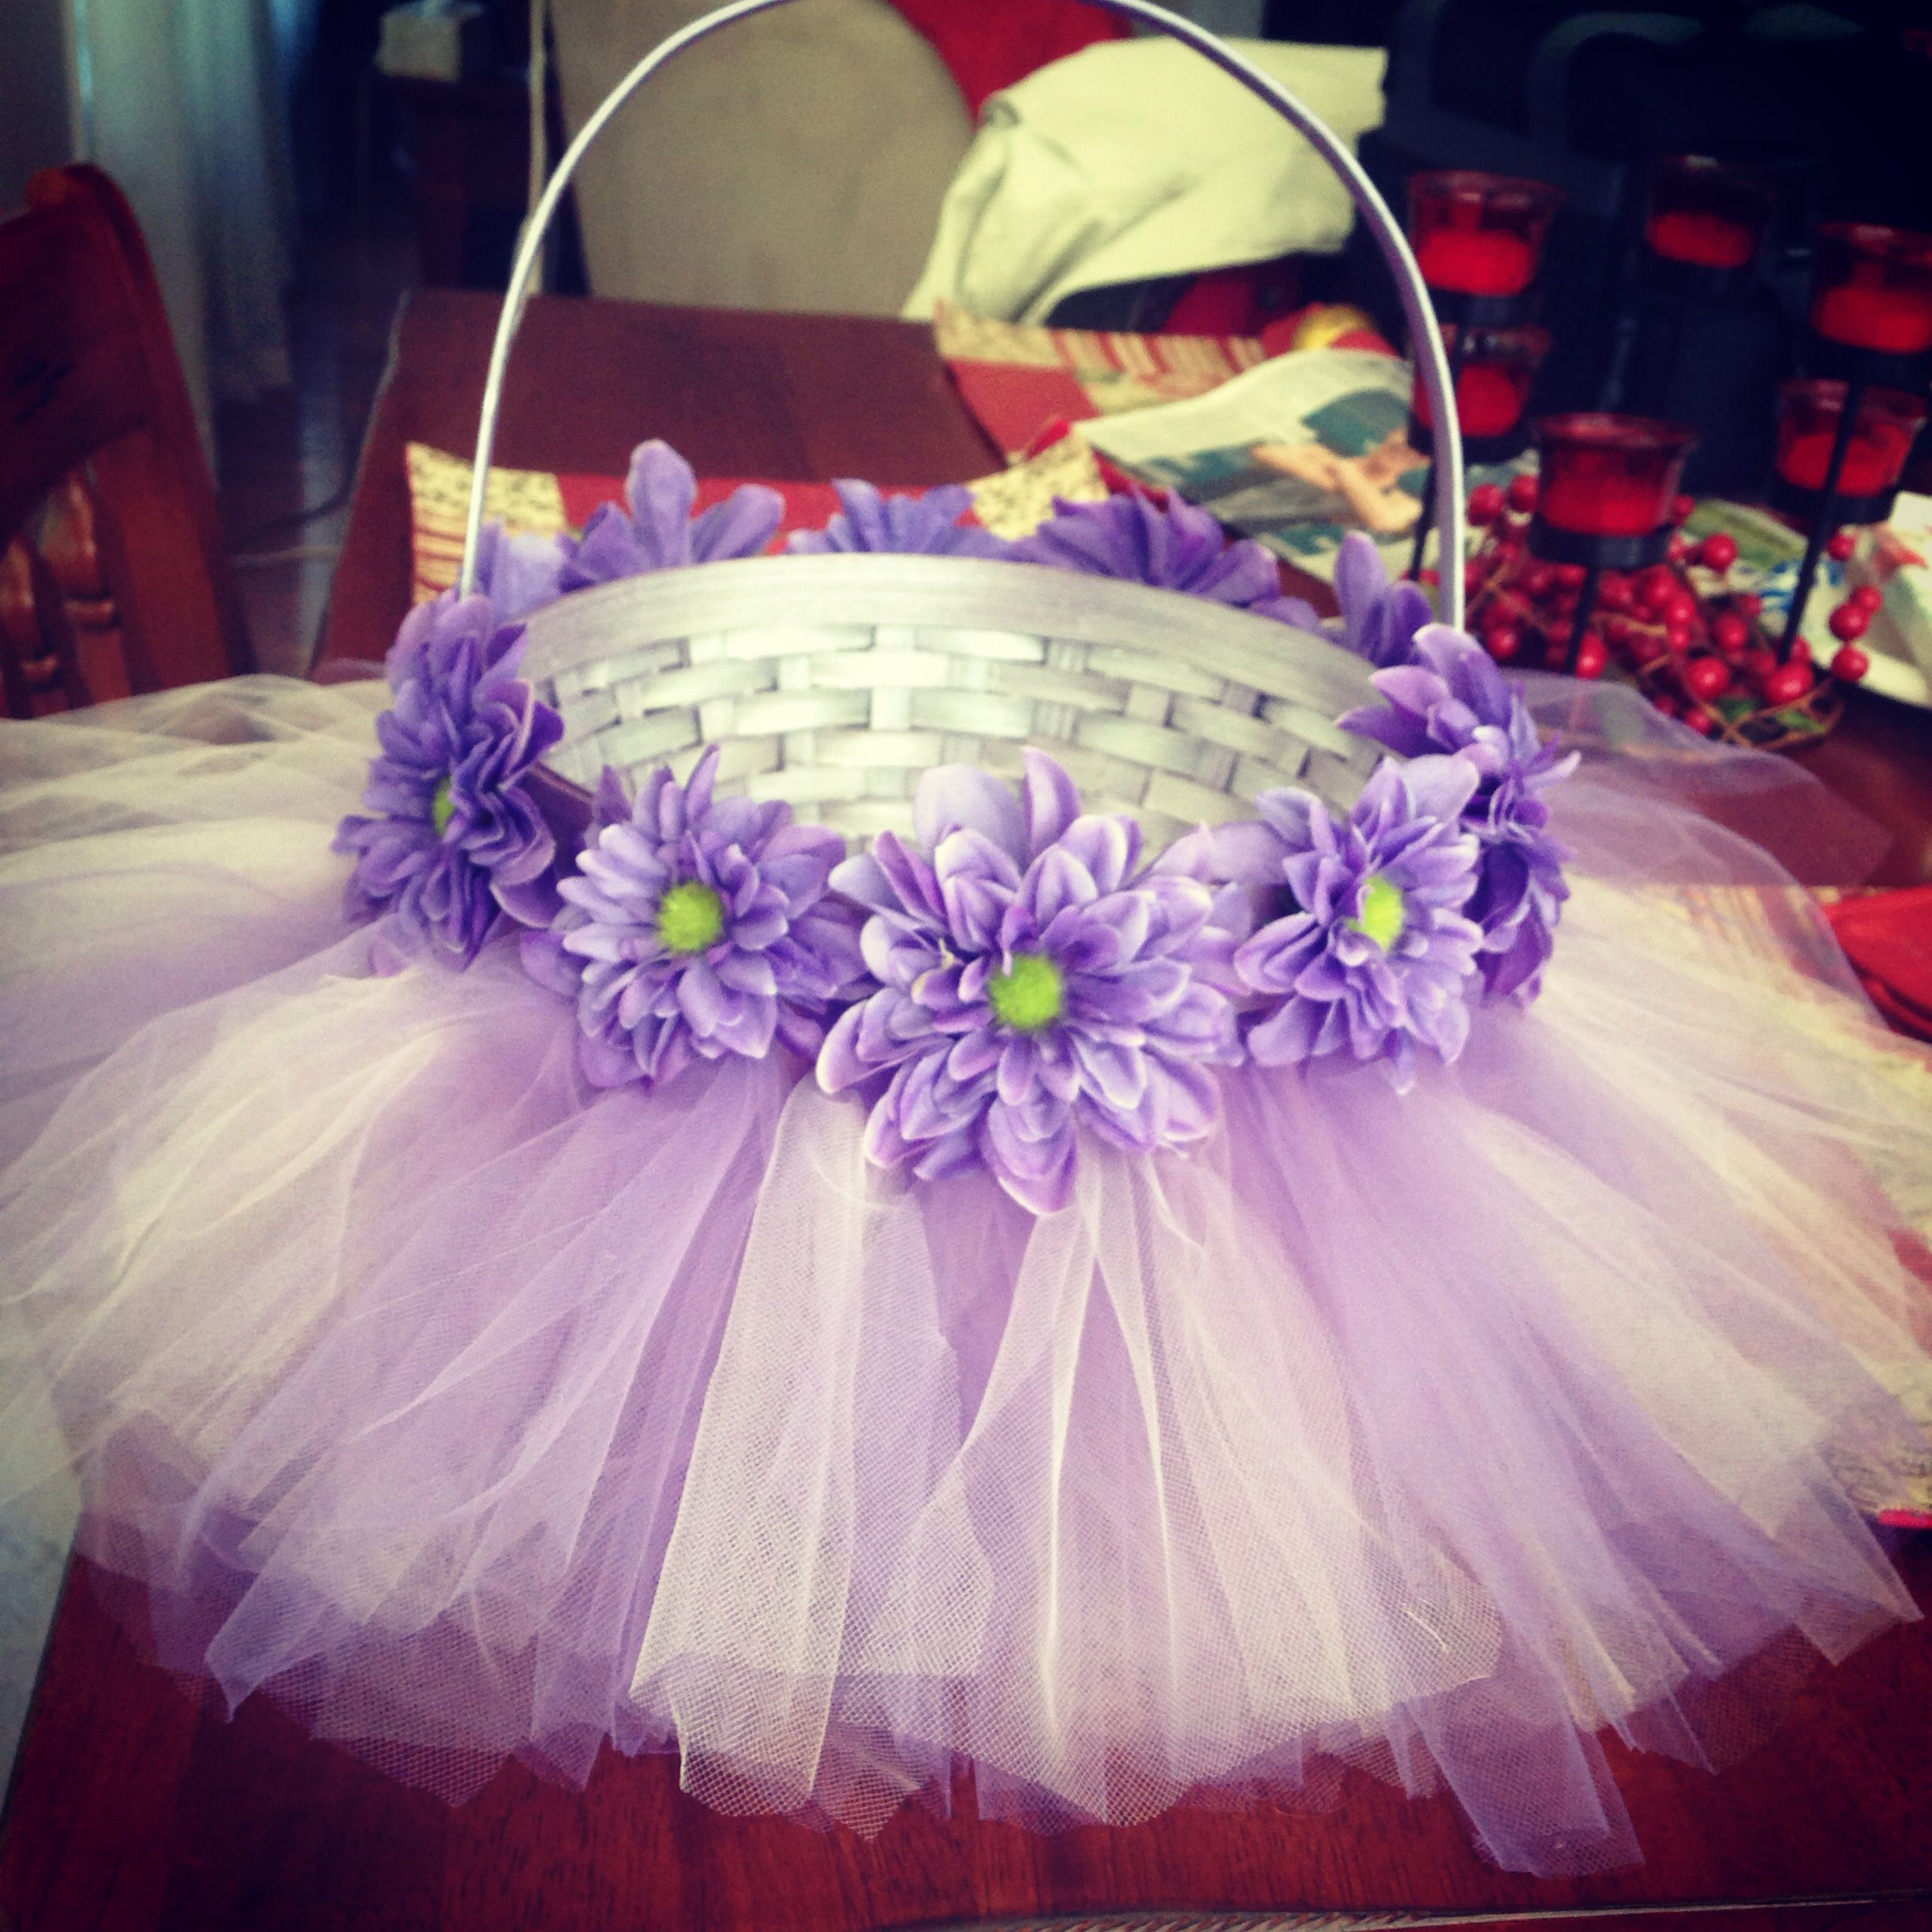 Diy easter basket with tulle and flowers dream wedding pinterest diy easter basket with tulle and flowers negle Choice Image